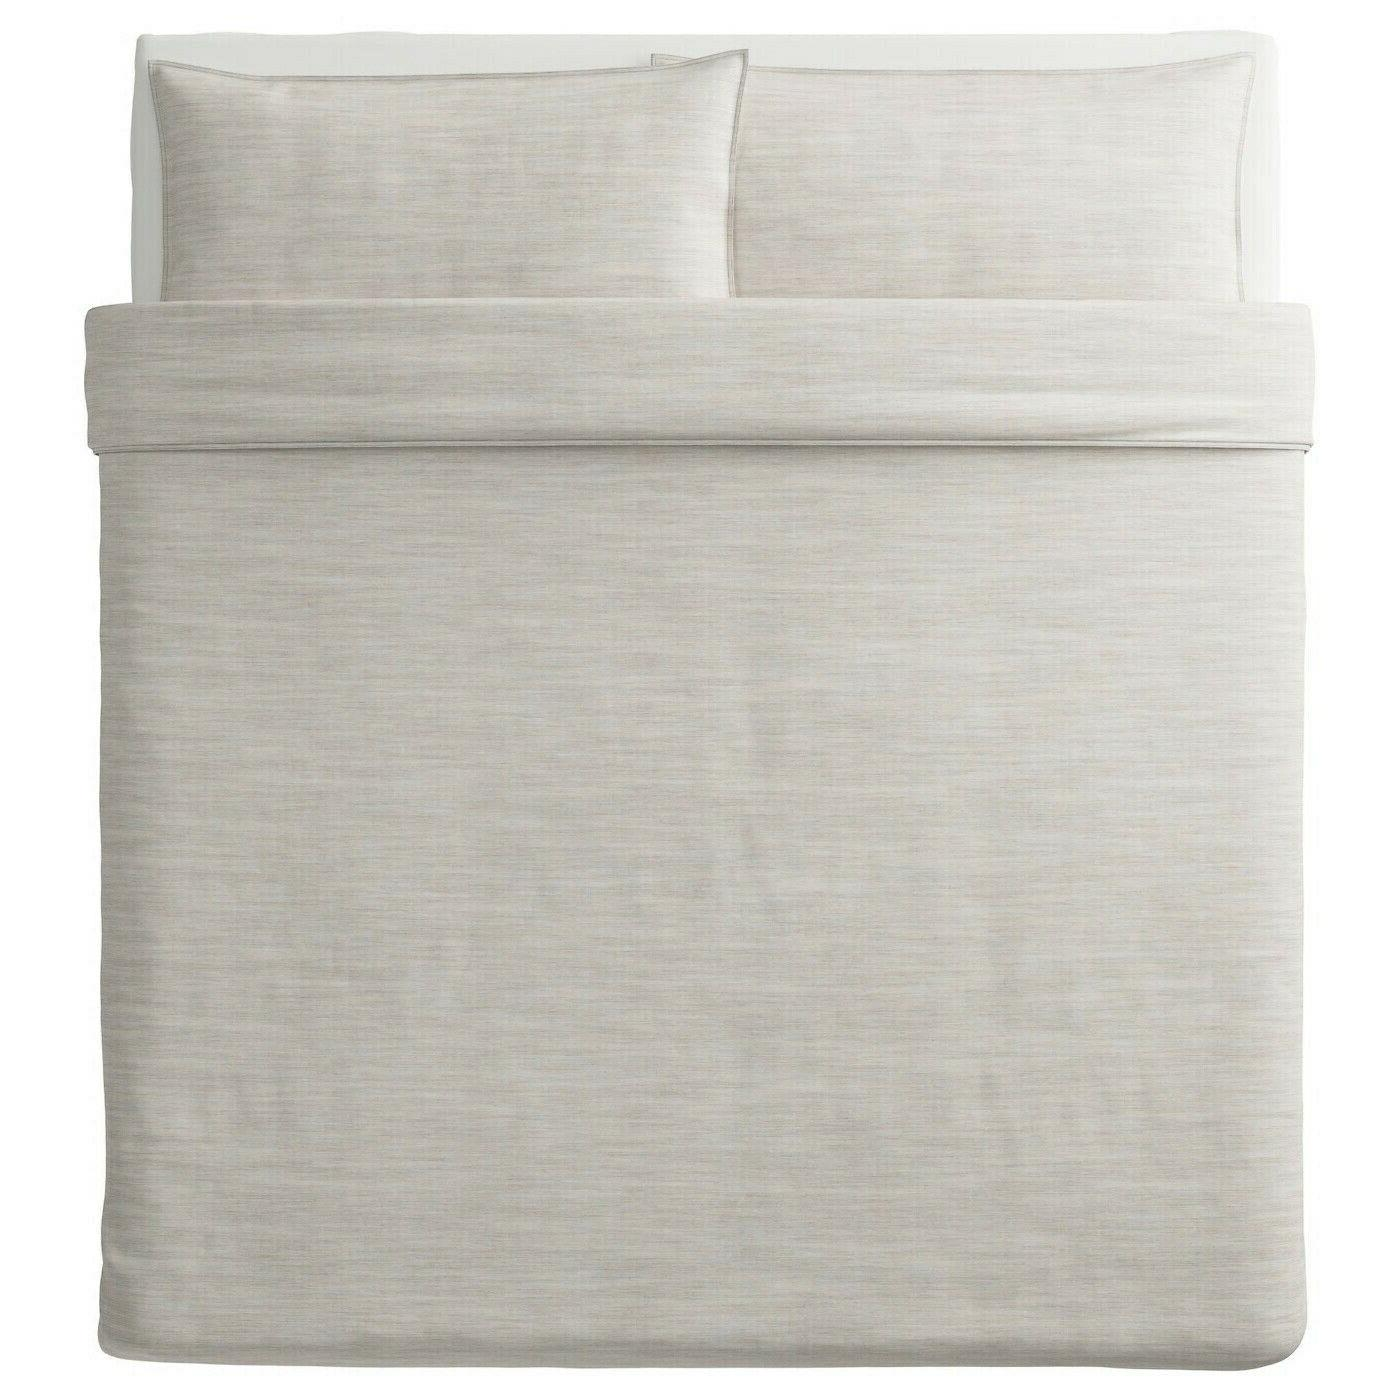 Ikea Cover w/2 Pillowcases set Woven Beige Striped